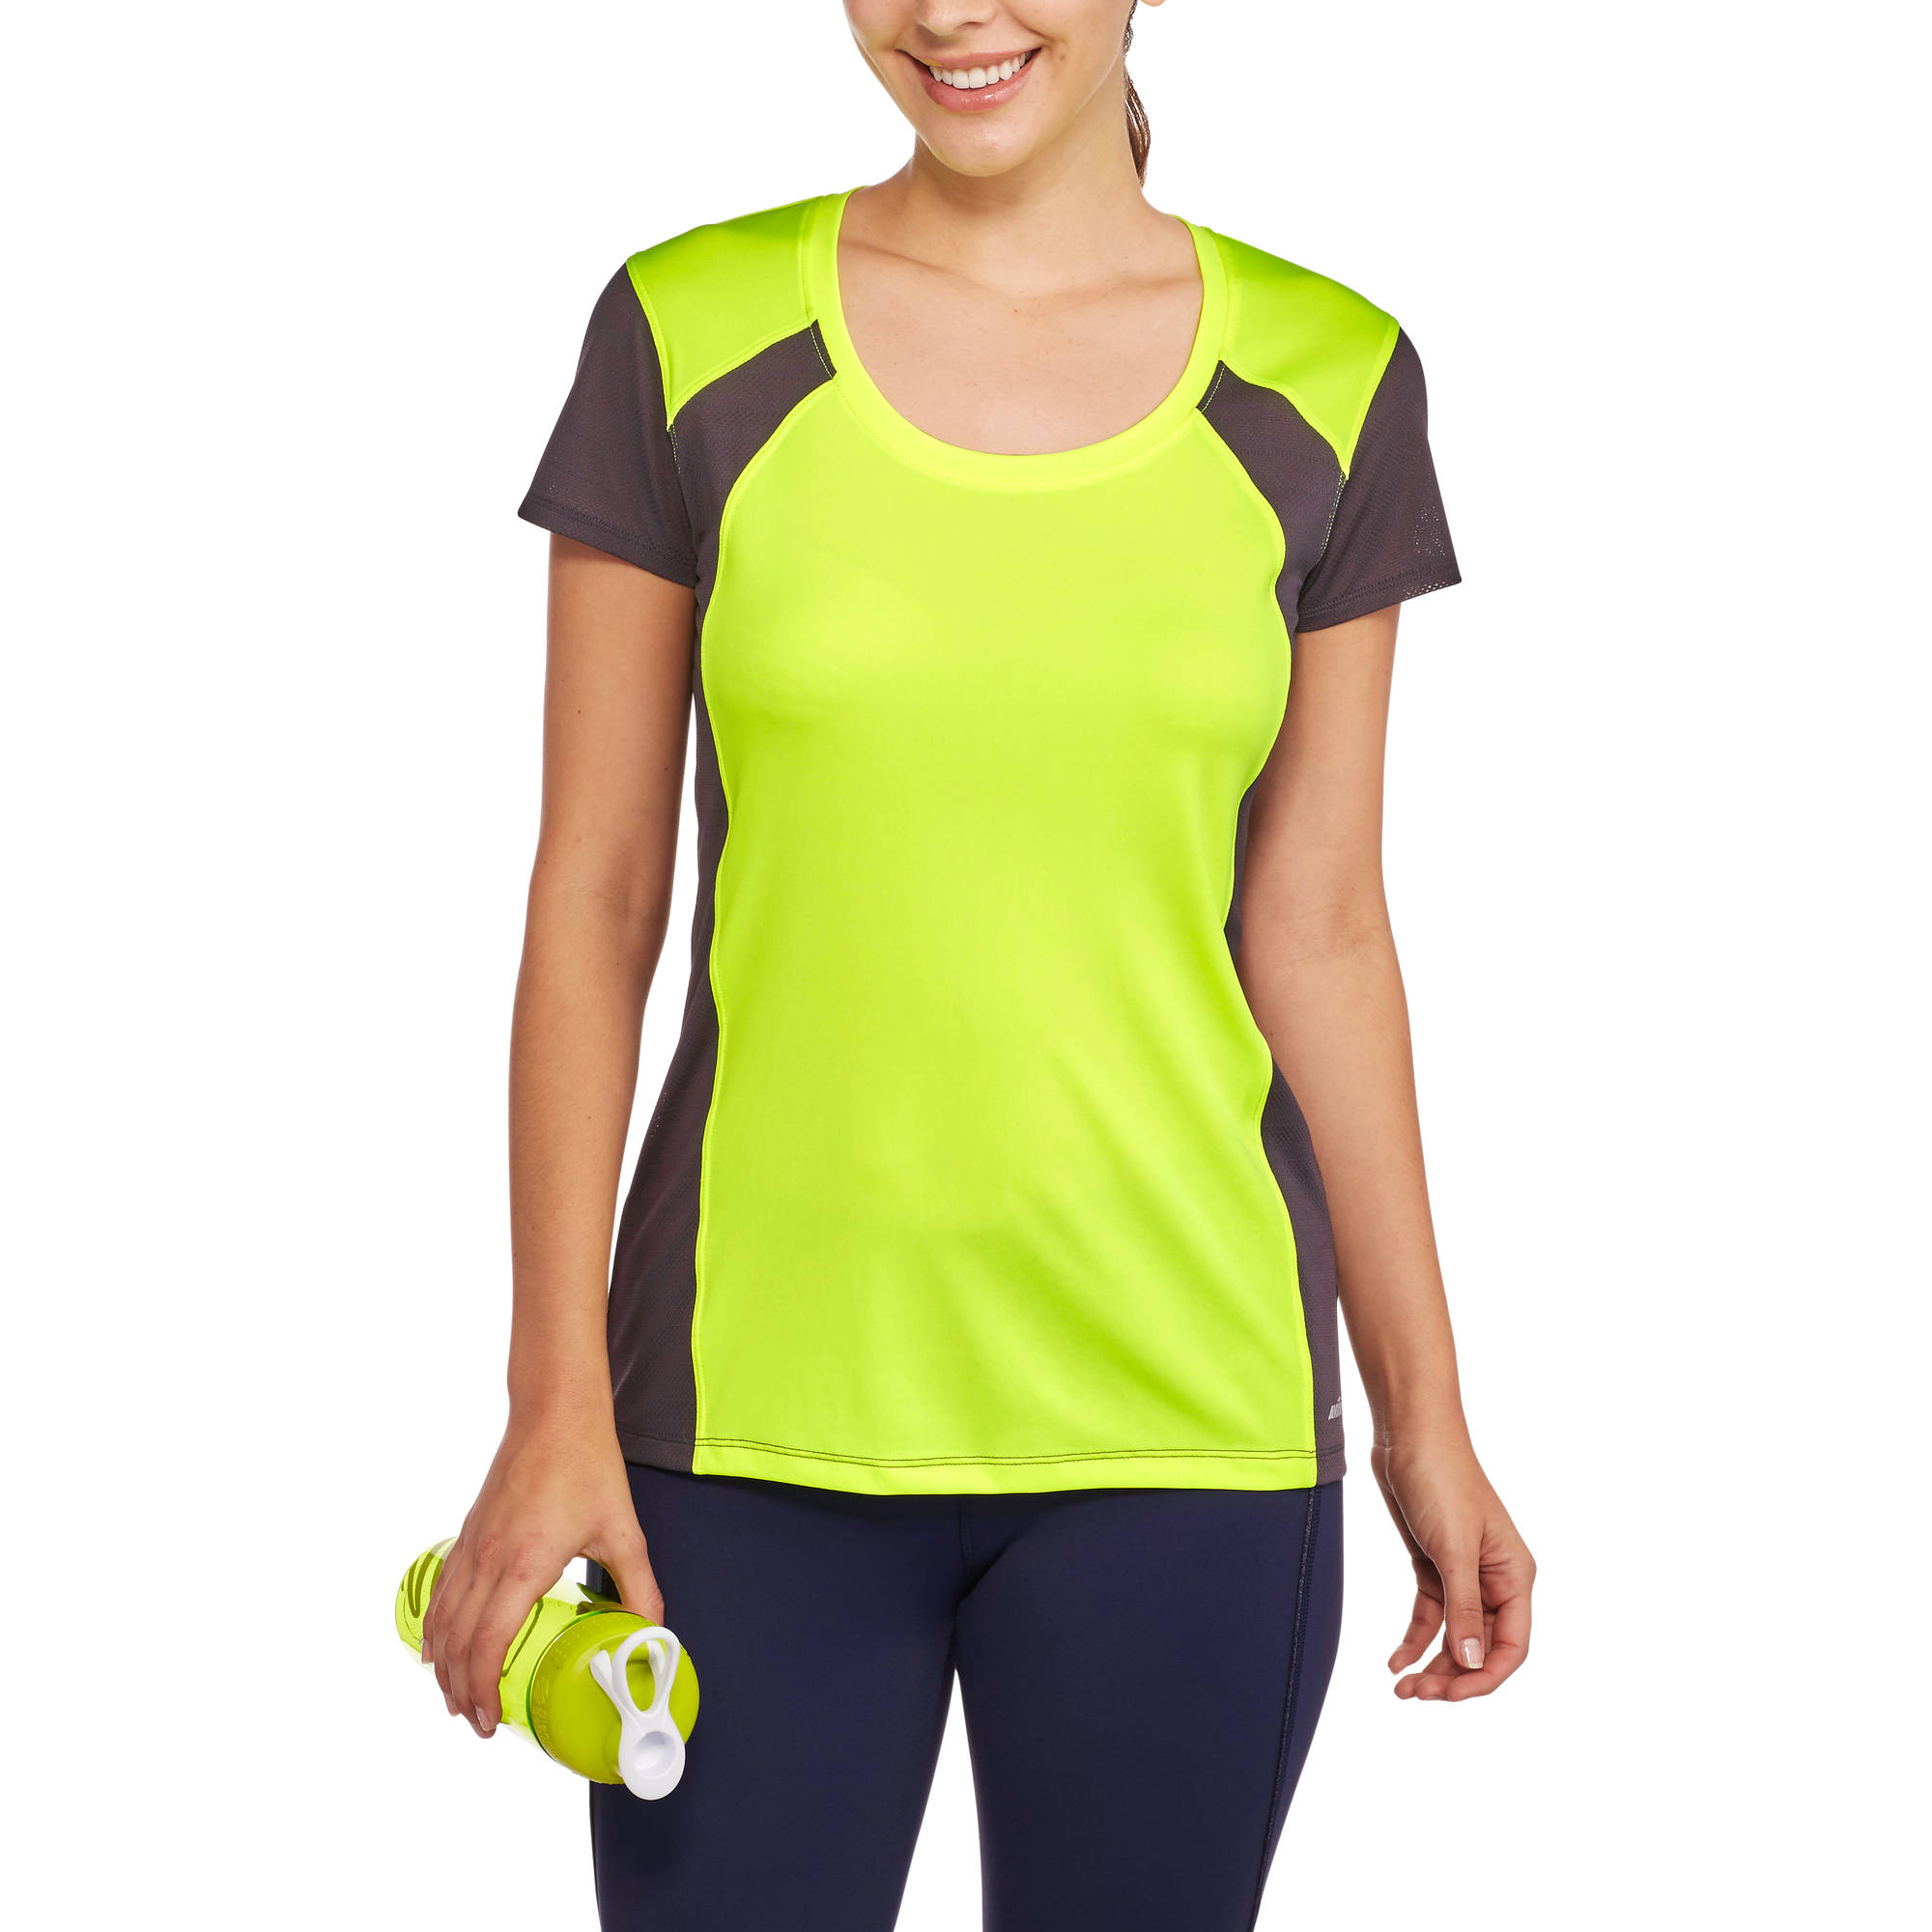 Walmart womens activewear